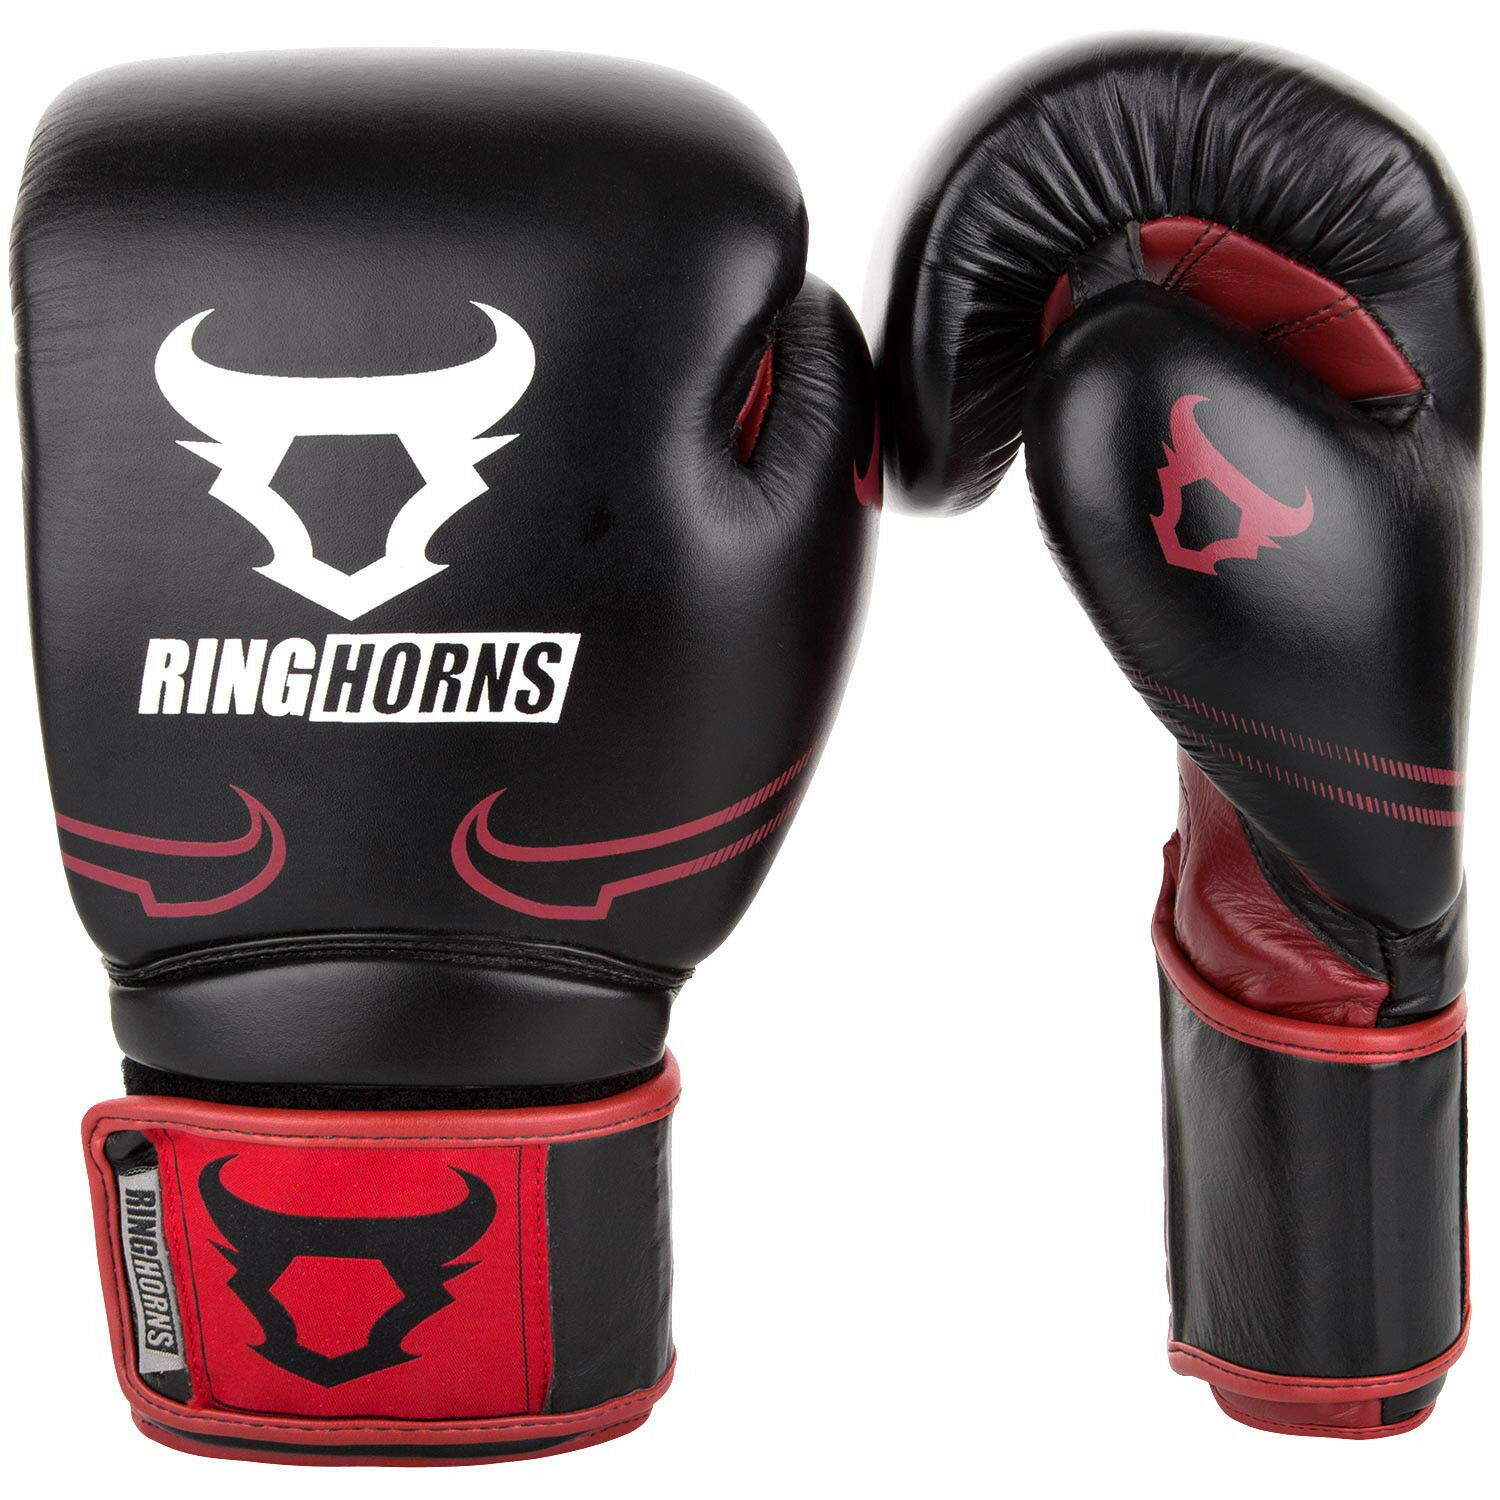 Ringhorns Destroyer Leder Boxing Gloves by Venum Sparring ROT 12 10 12 ROT 14 16 oz 30110f